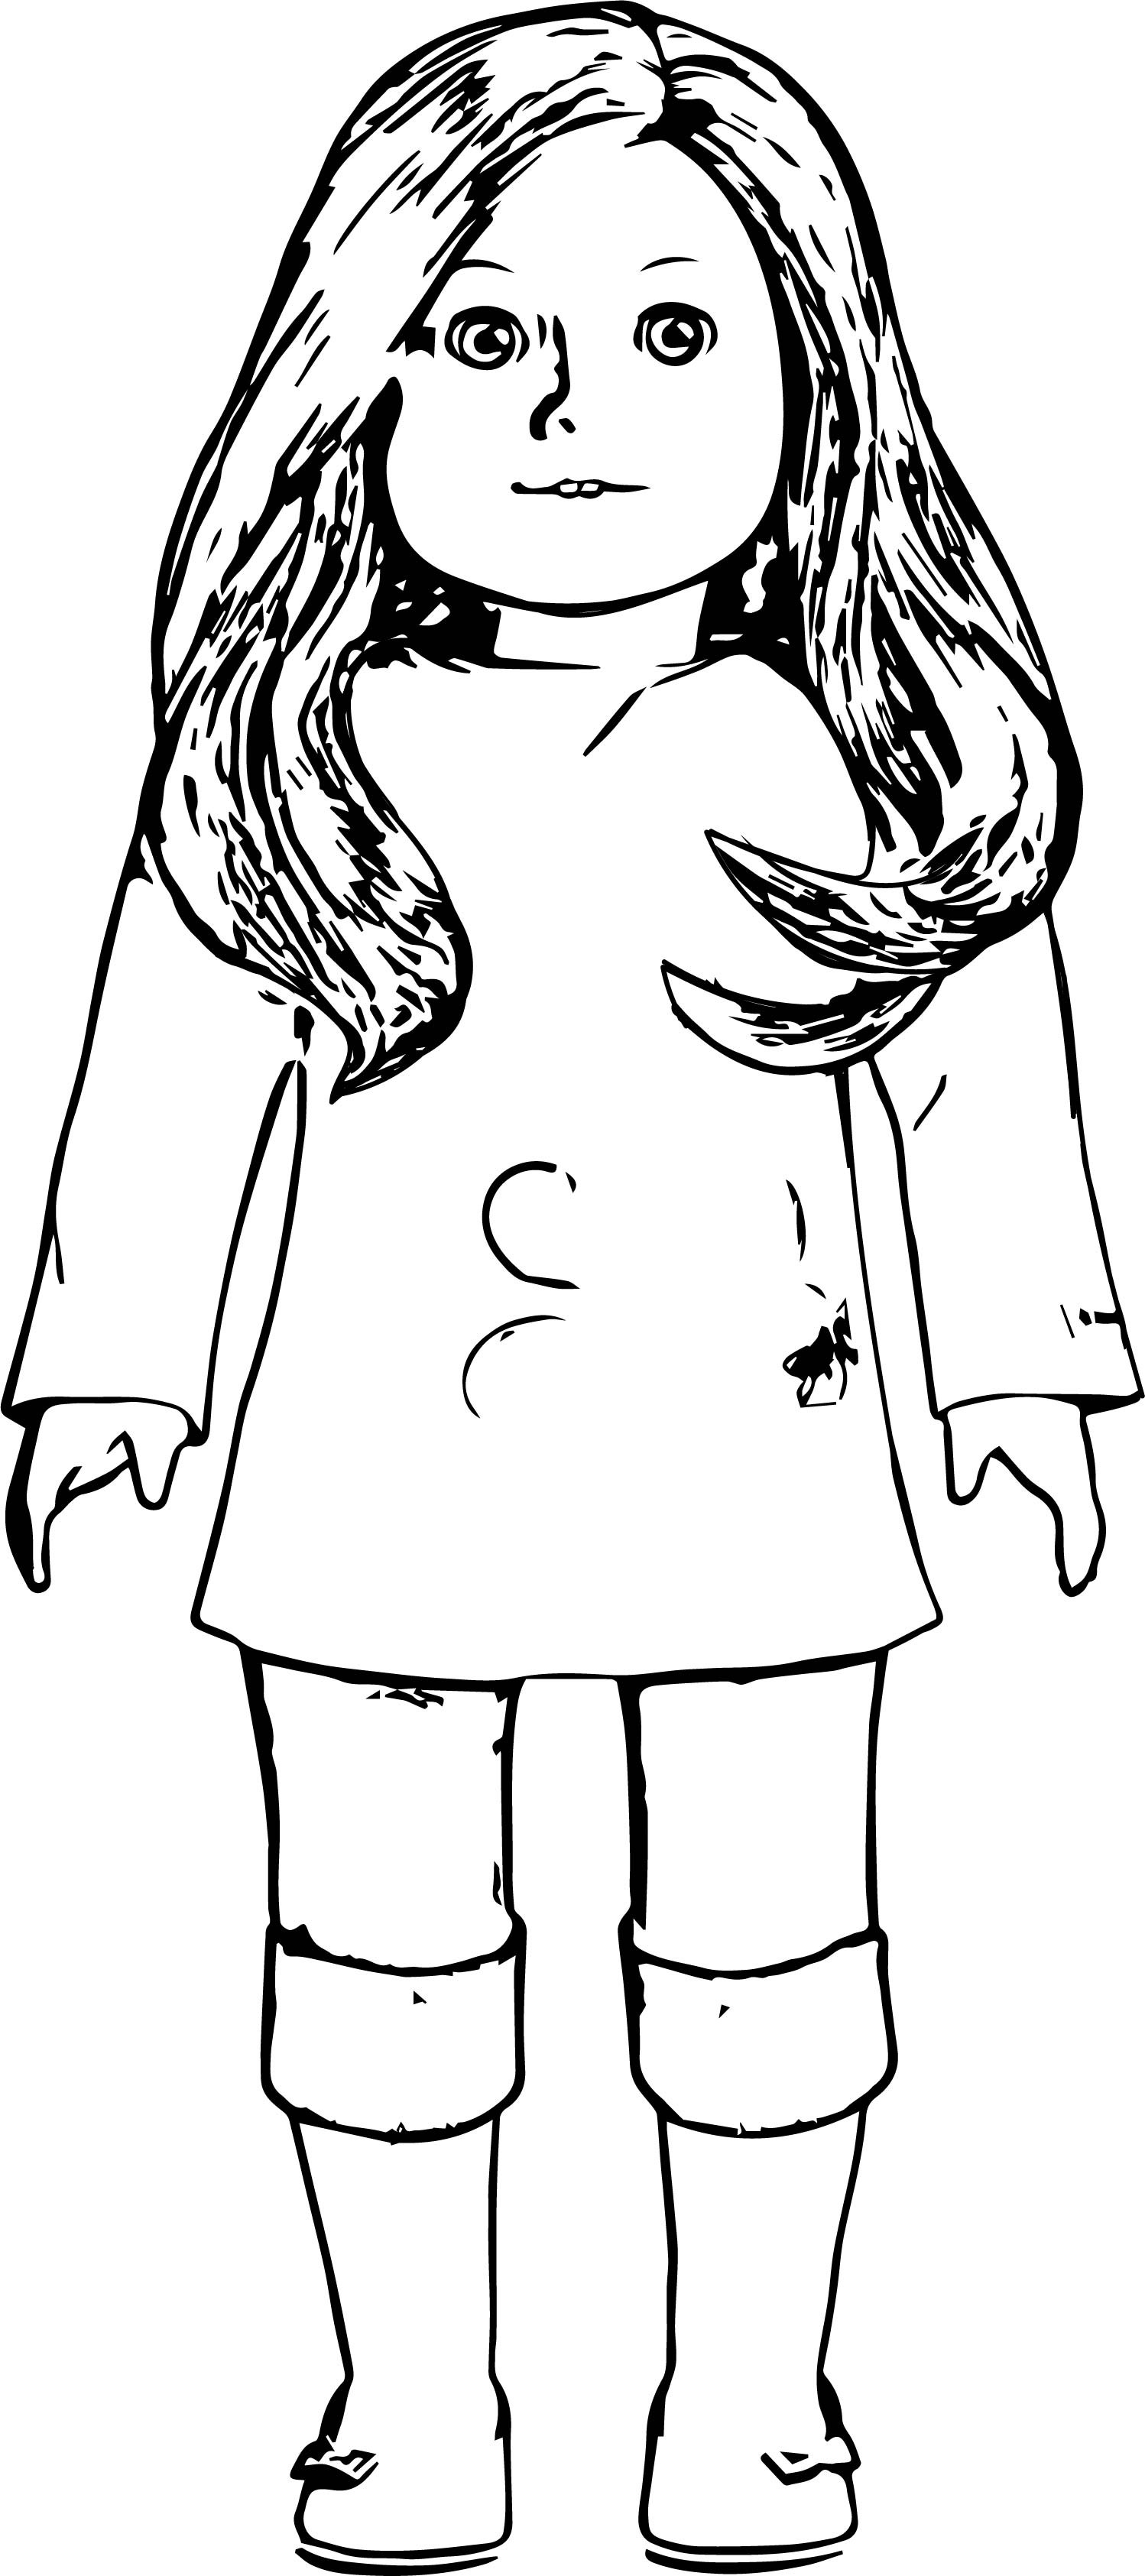 american girl doll coloring page american girl coloring pages  best coloring pages for kids page girl coloring doll american